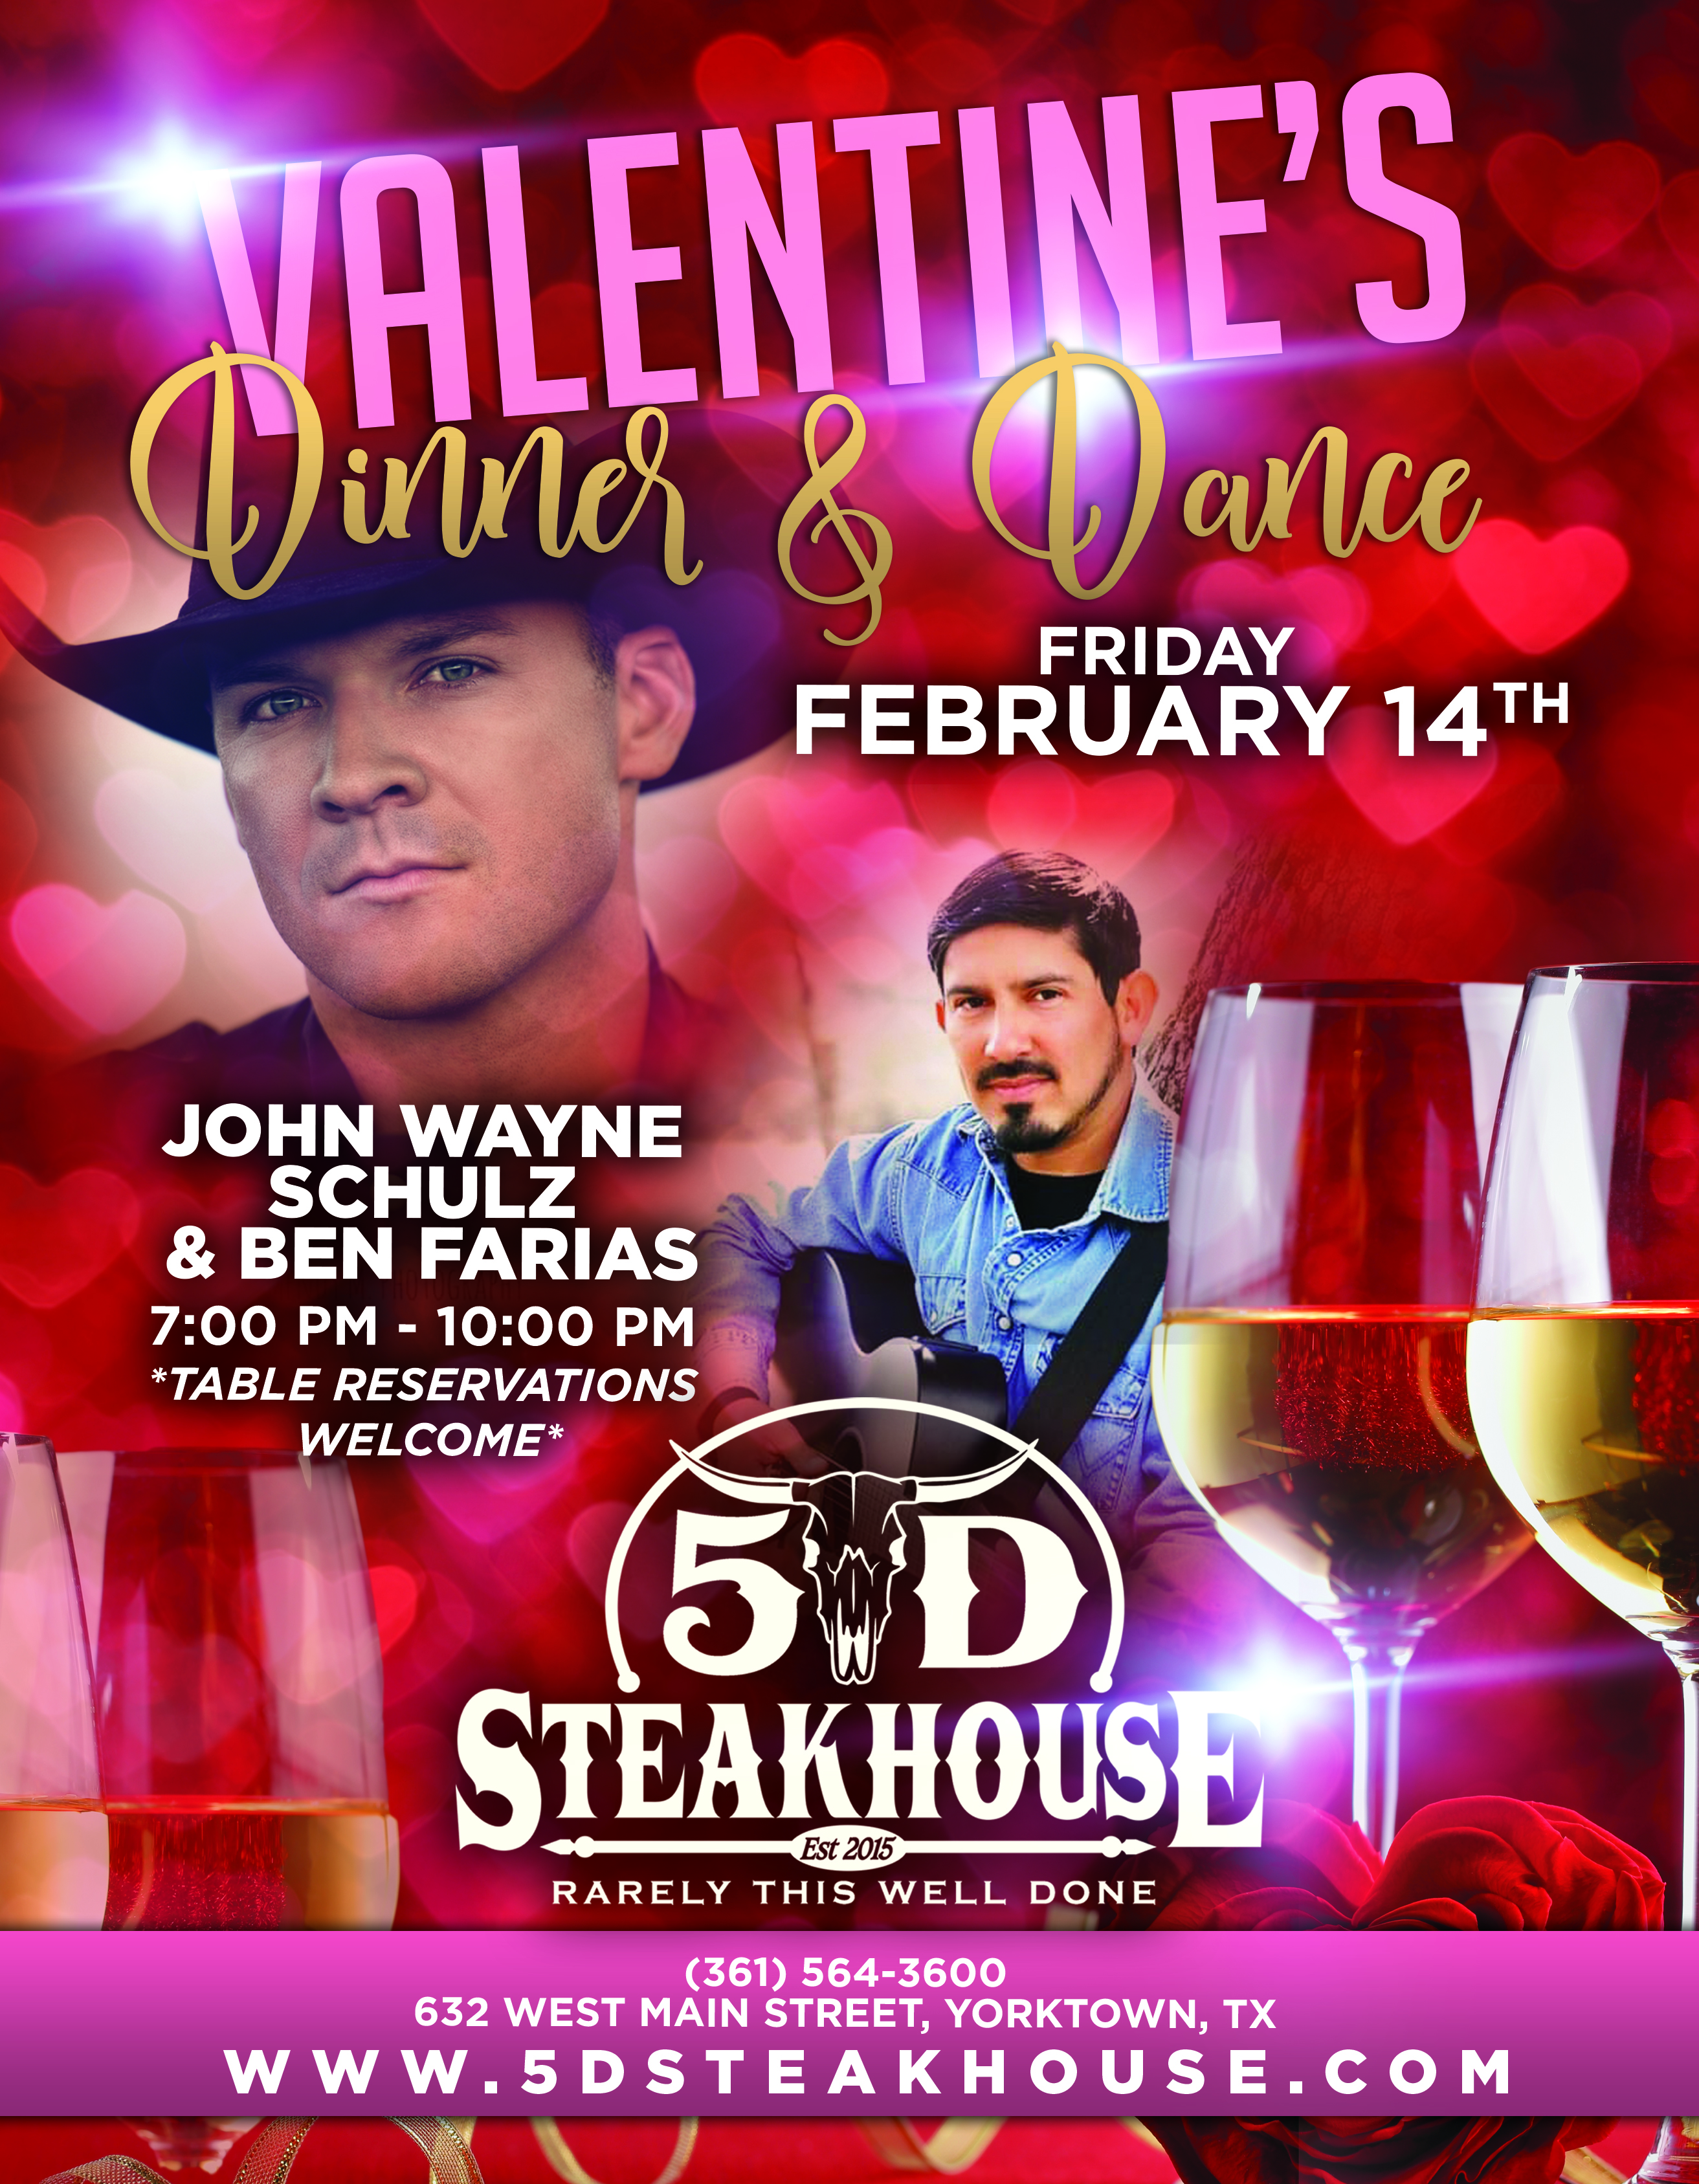 Valentine's Dinner & Dance, Friday, February 14th. John Wayne Schulz & Ben Farias from 7:00 PM to 10:00 PM, table reservations welcome.